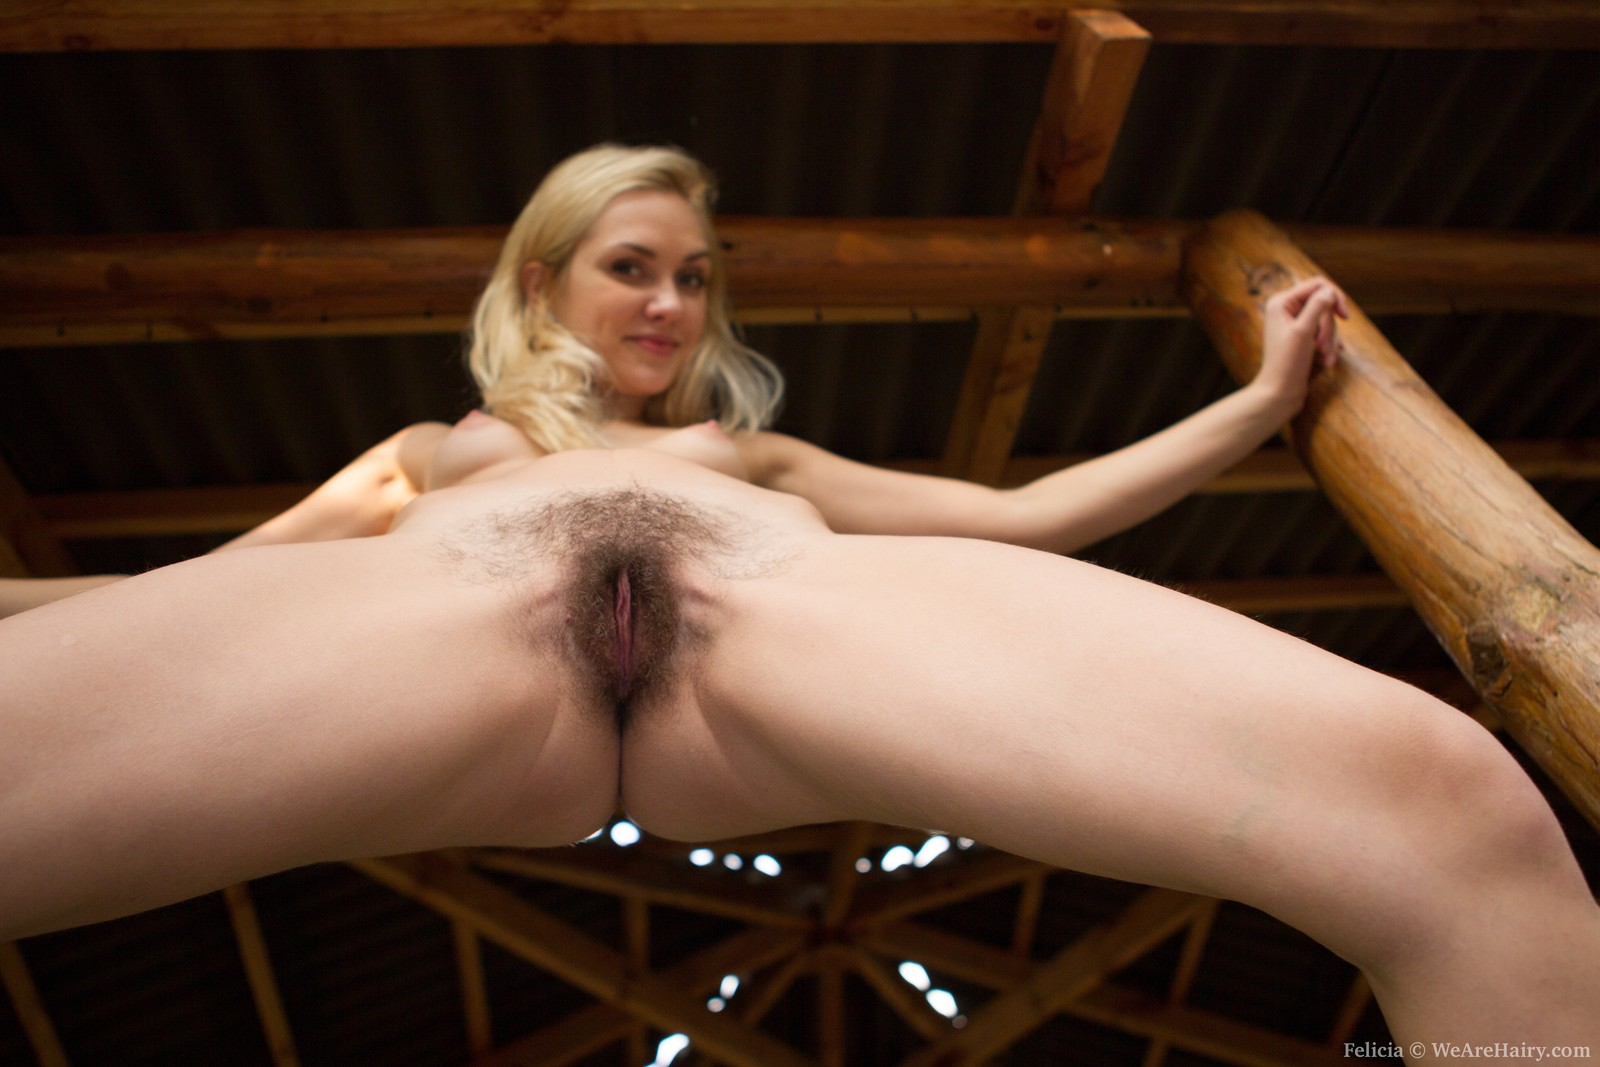 Nika Bank Ivan Damm Porno we are hairy felicia hairy girl felicia outside in only blue